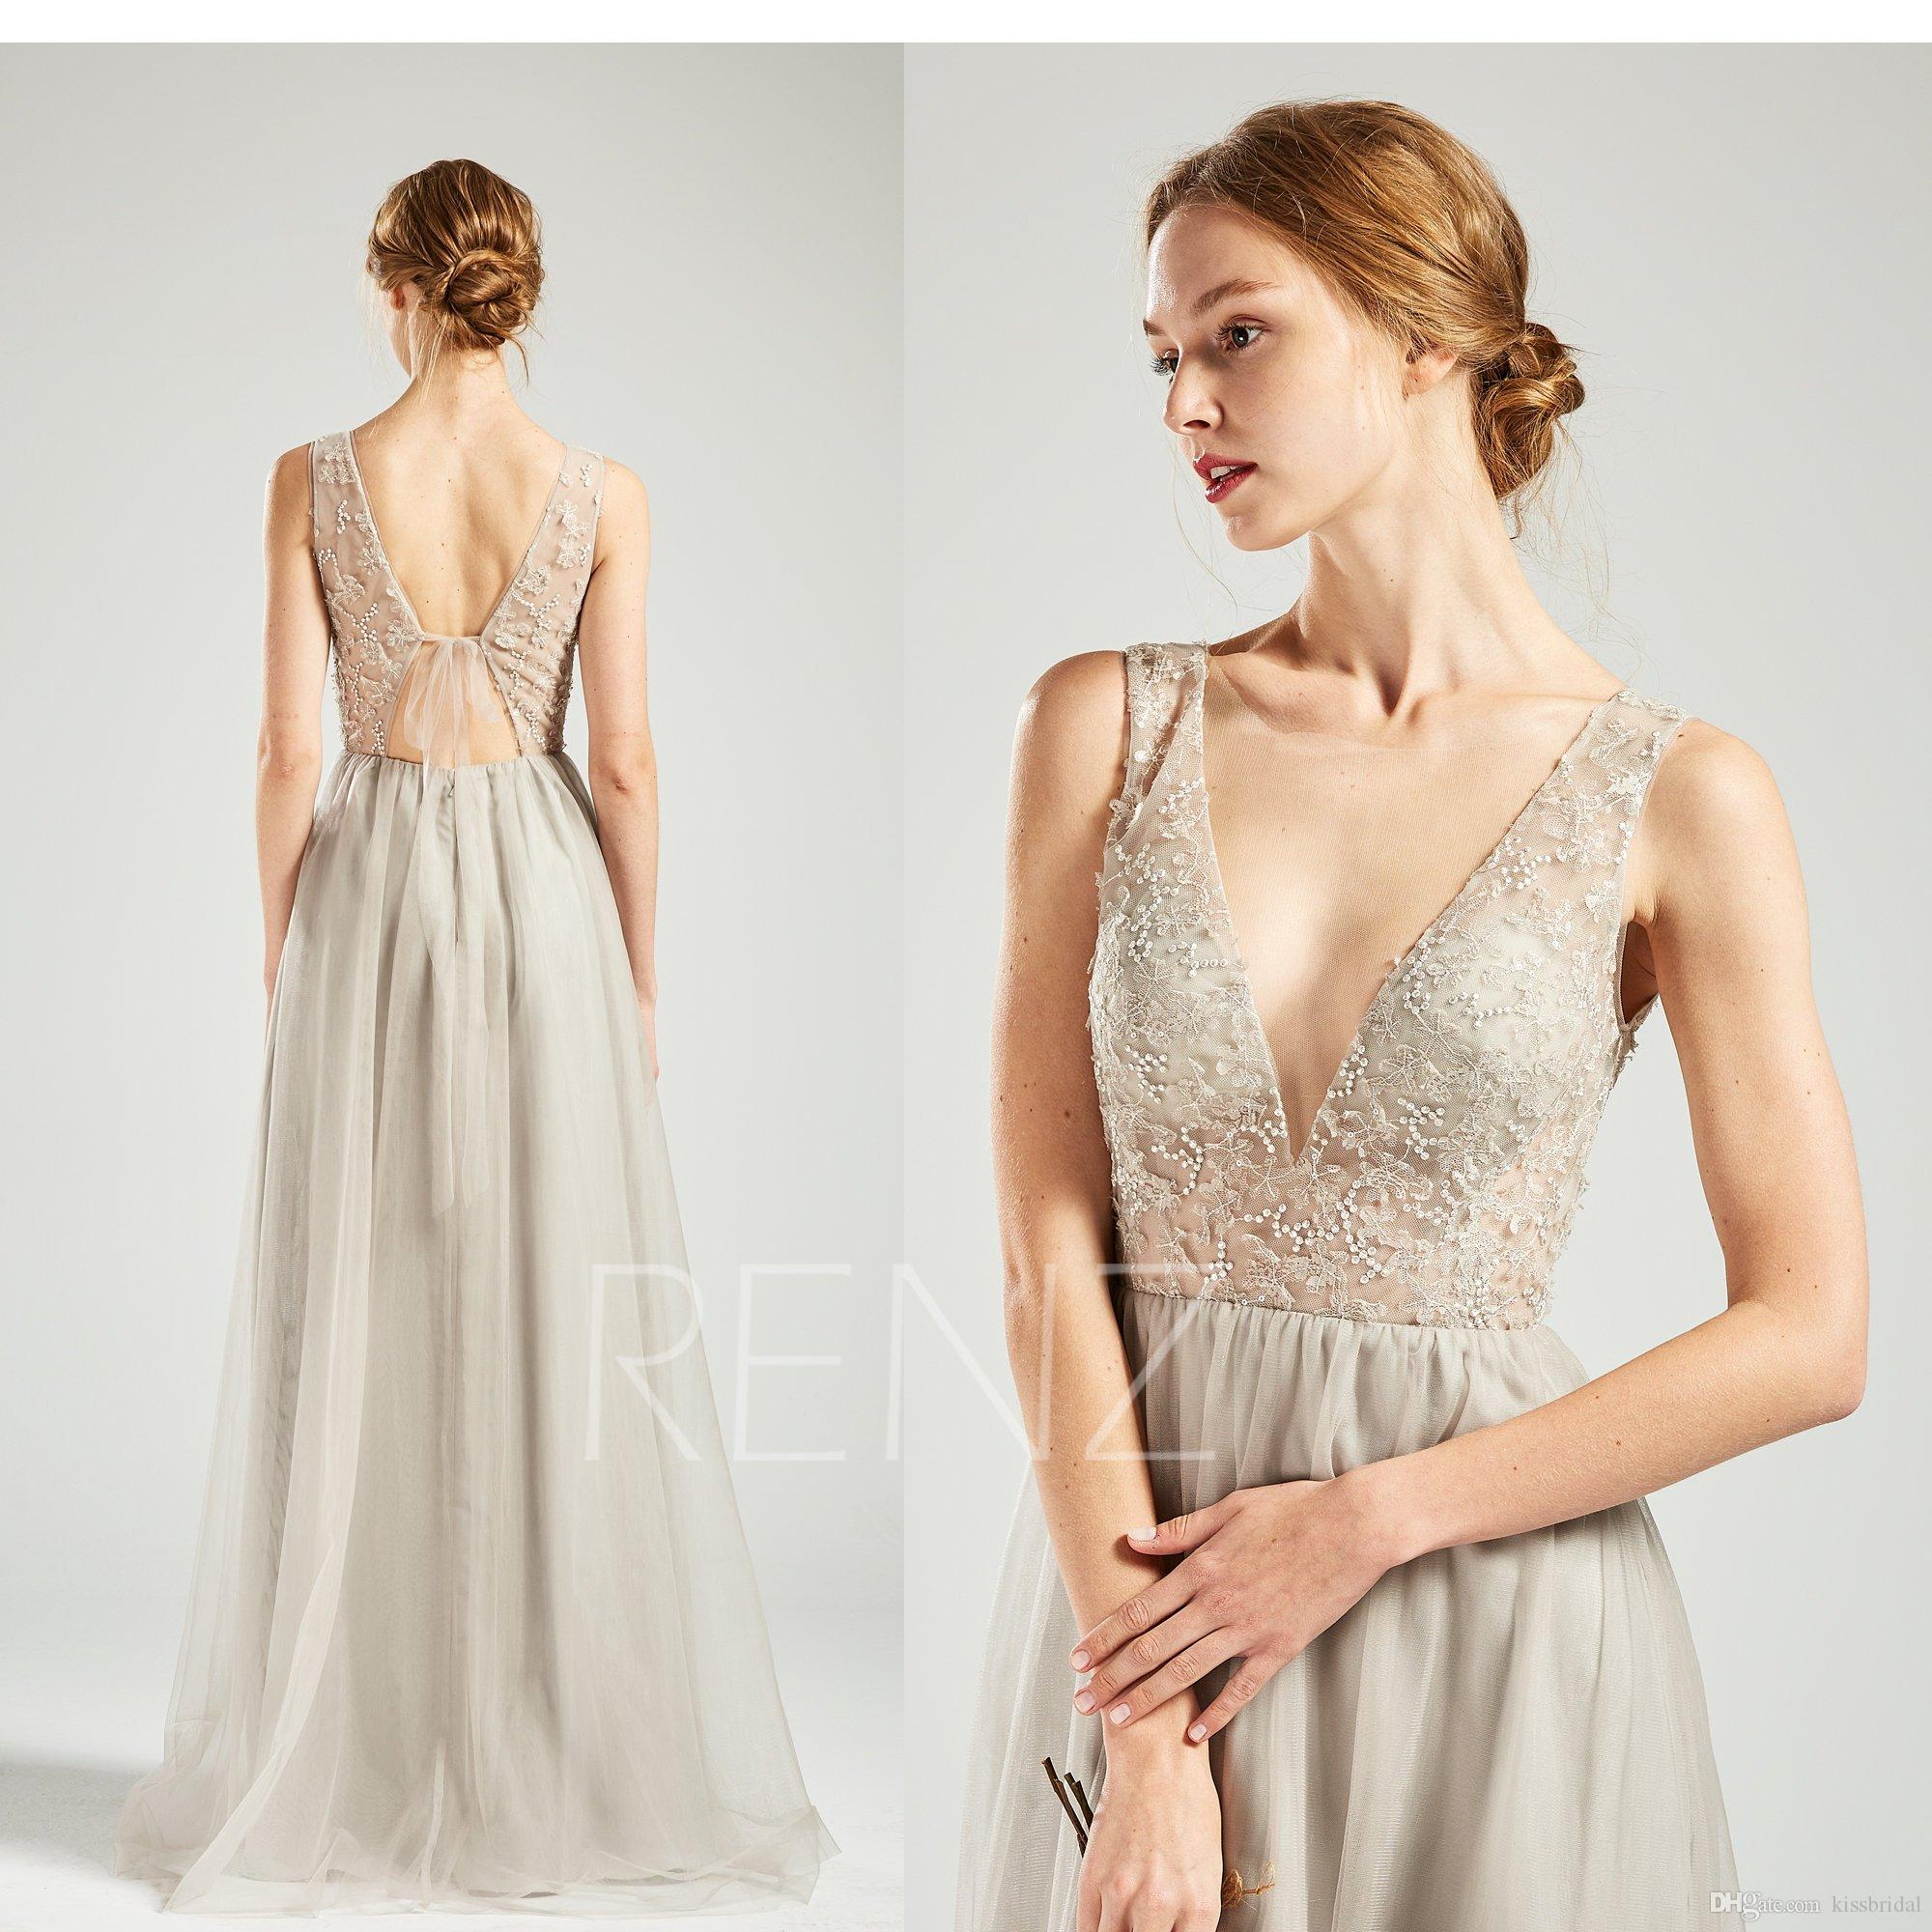 a4125439e74 2019 Evening Dresses Robes De Soiree Beaded Lace Applique Sheer Strap V  Neck Prom Dress Long Cheap Bridesmaid Cocktail Party Formal Gowns Evening  Dresses ...